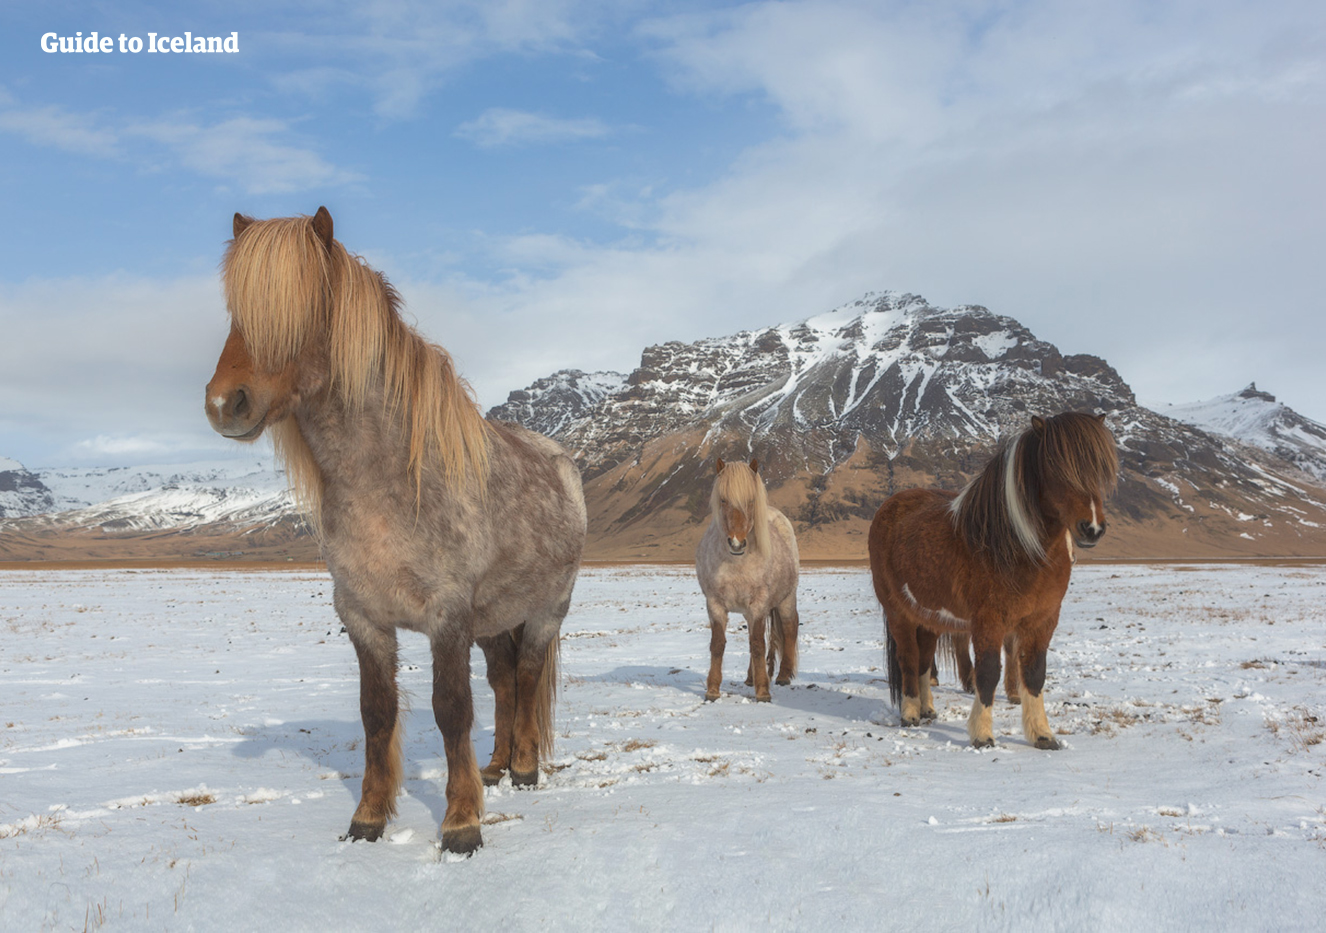 Icelandic horses are built to withstand the cold winds and deep snows of Iceland's winters.